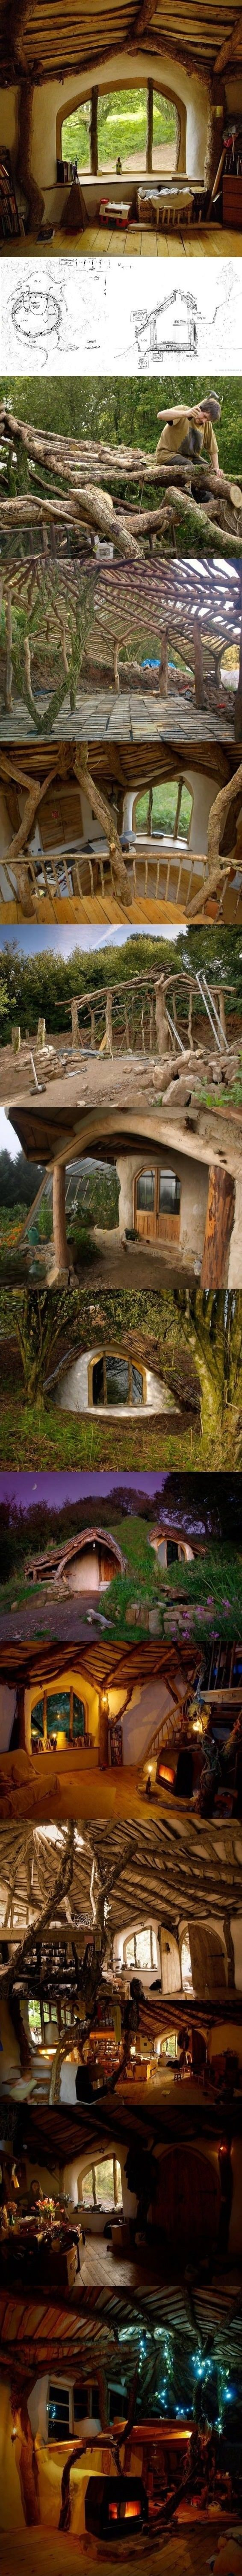 How to build a hobbit house. Except first off, its not a hobbit house, its a hobbit hole. And secondly, they're supposed to be built into the sides of hills. Gawd.